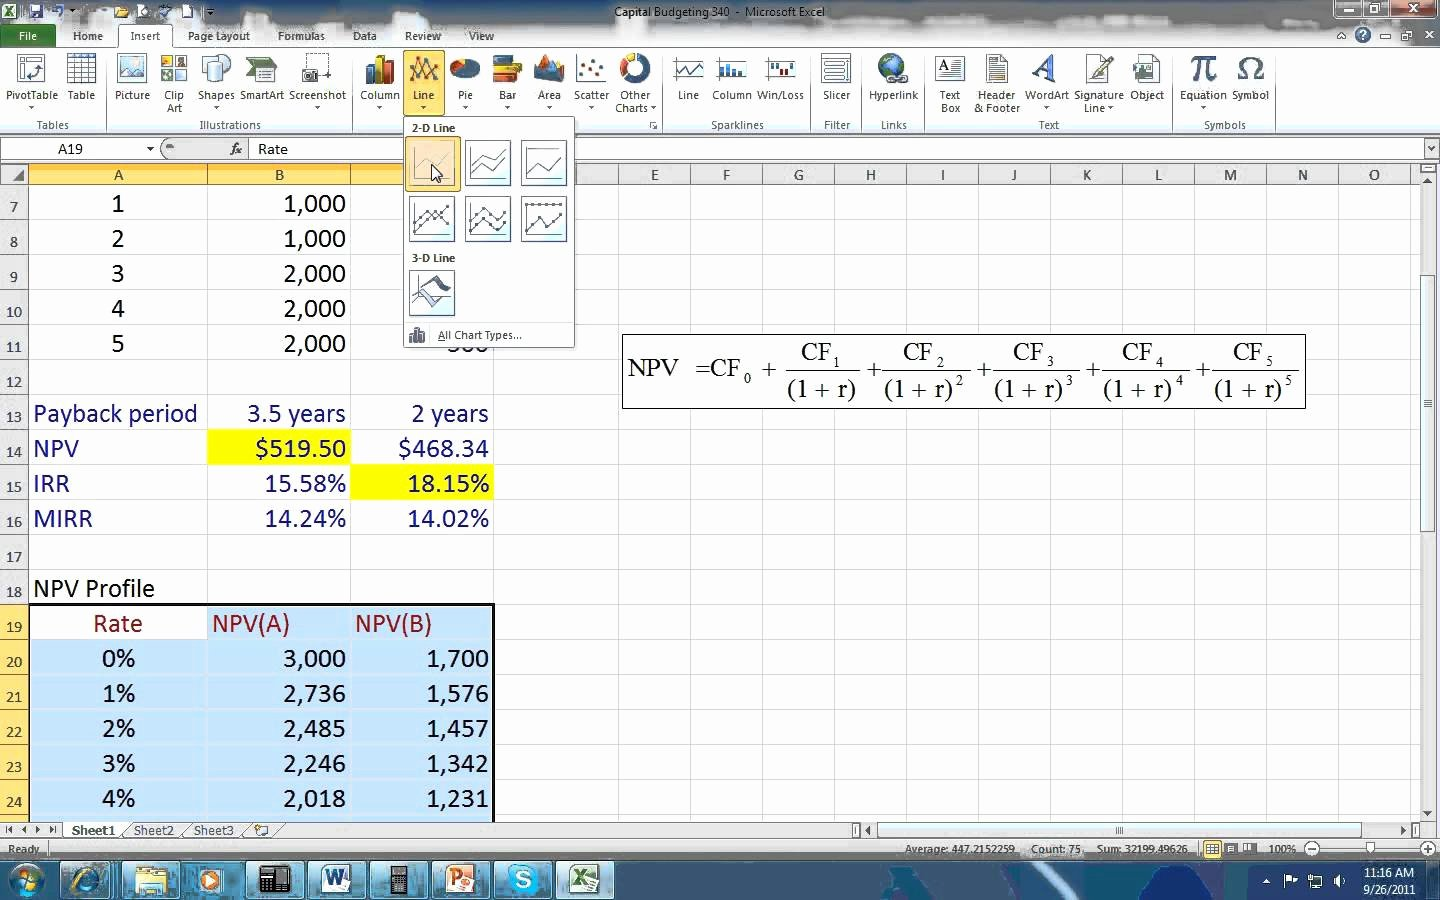 Capital Budget Template Excel Inspirational Capital Expenditure Bud Template Excel – thedl